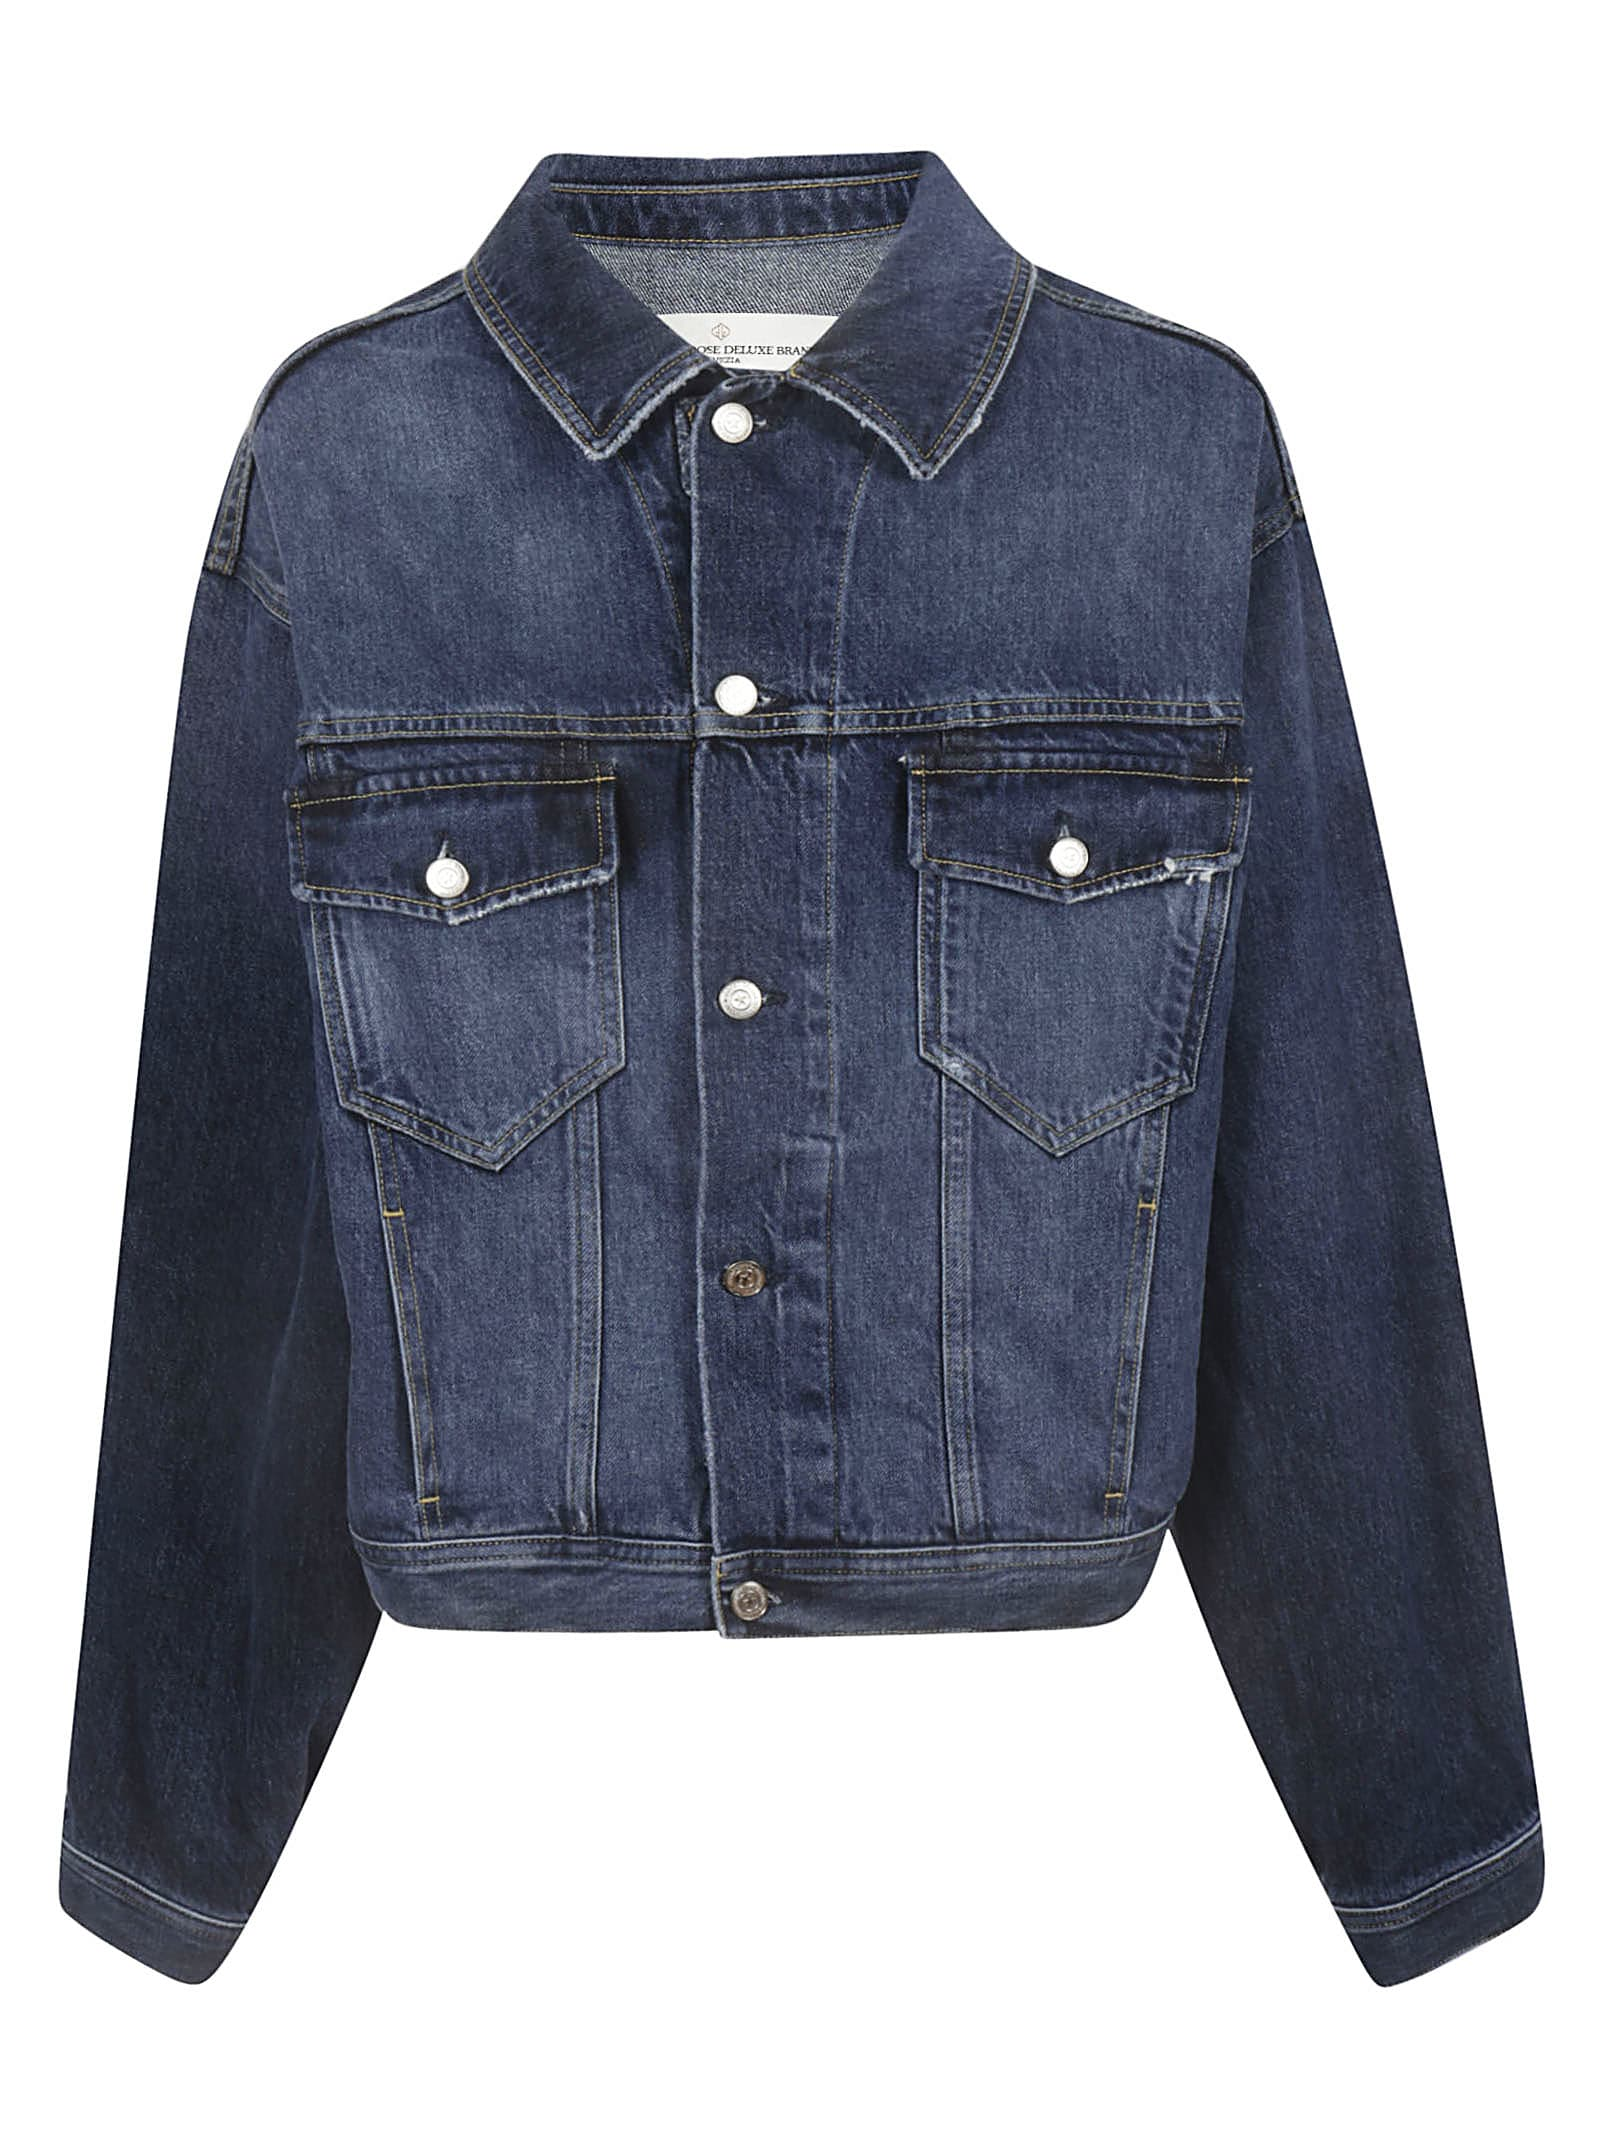 Golden Goose Classic Denim Jacket